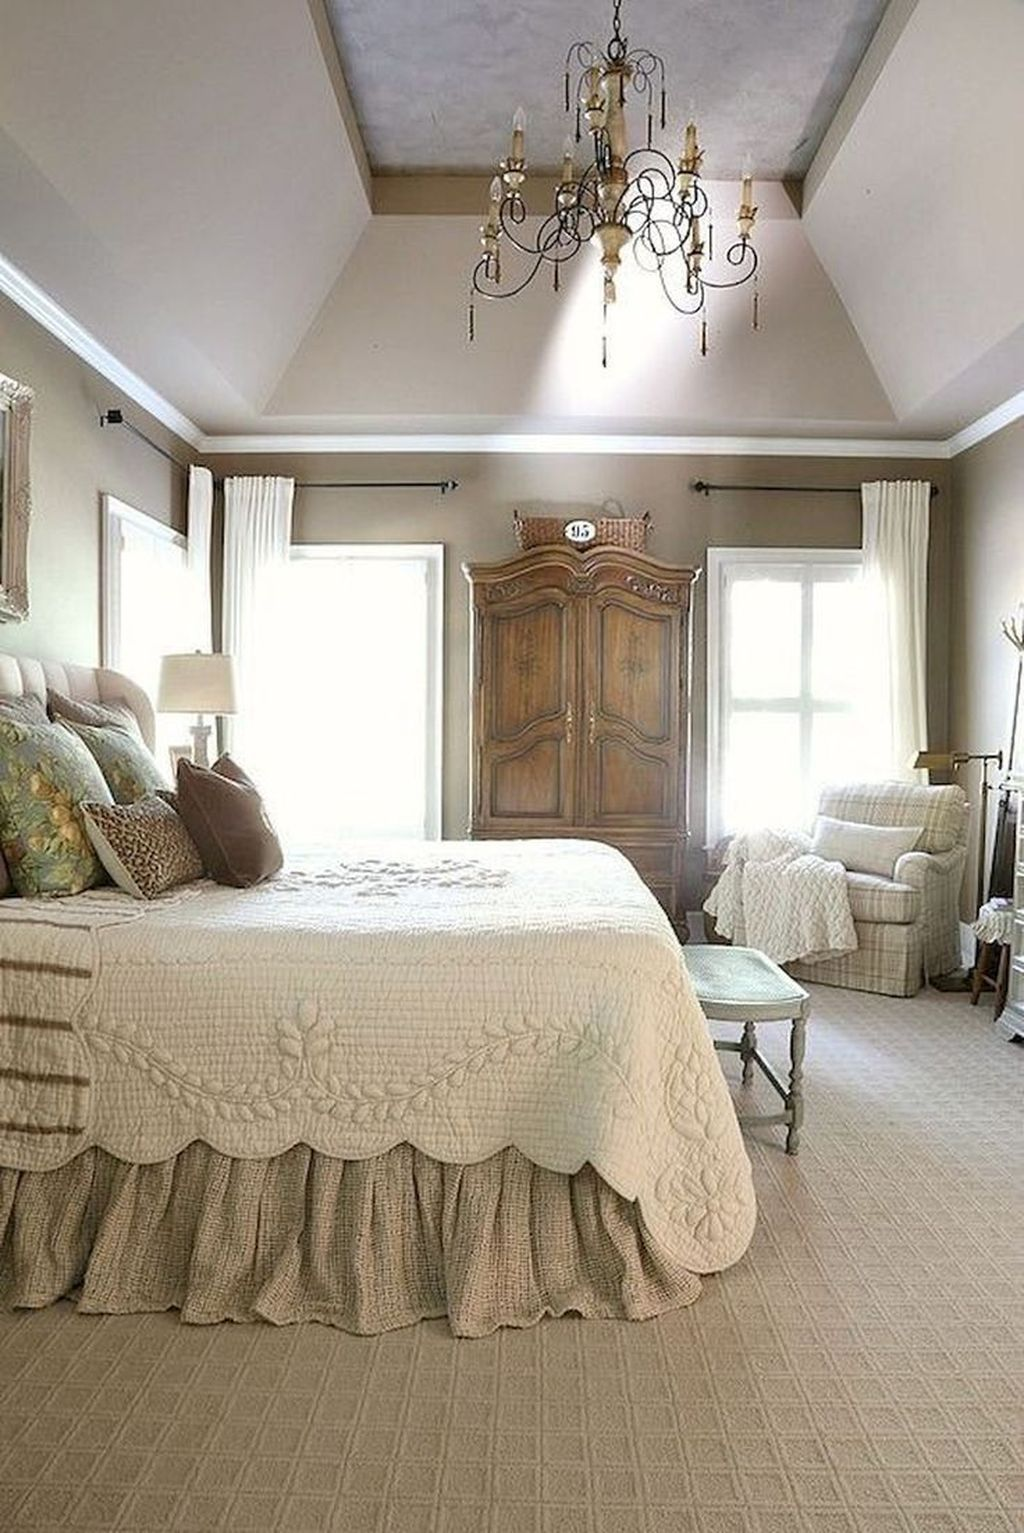 30 Cool French Country Master Bedroom Design Ideas With Farmhouse Style French Bedroom Design Country Master Bedroom French Country Master Bedroom